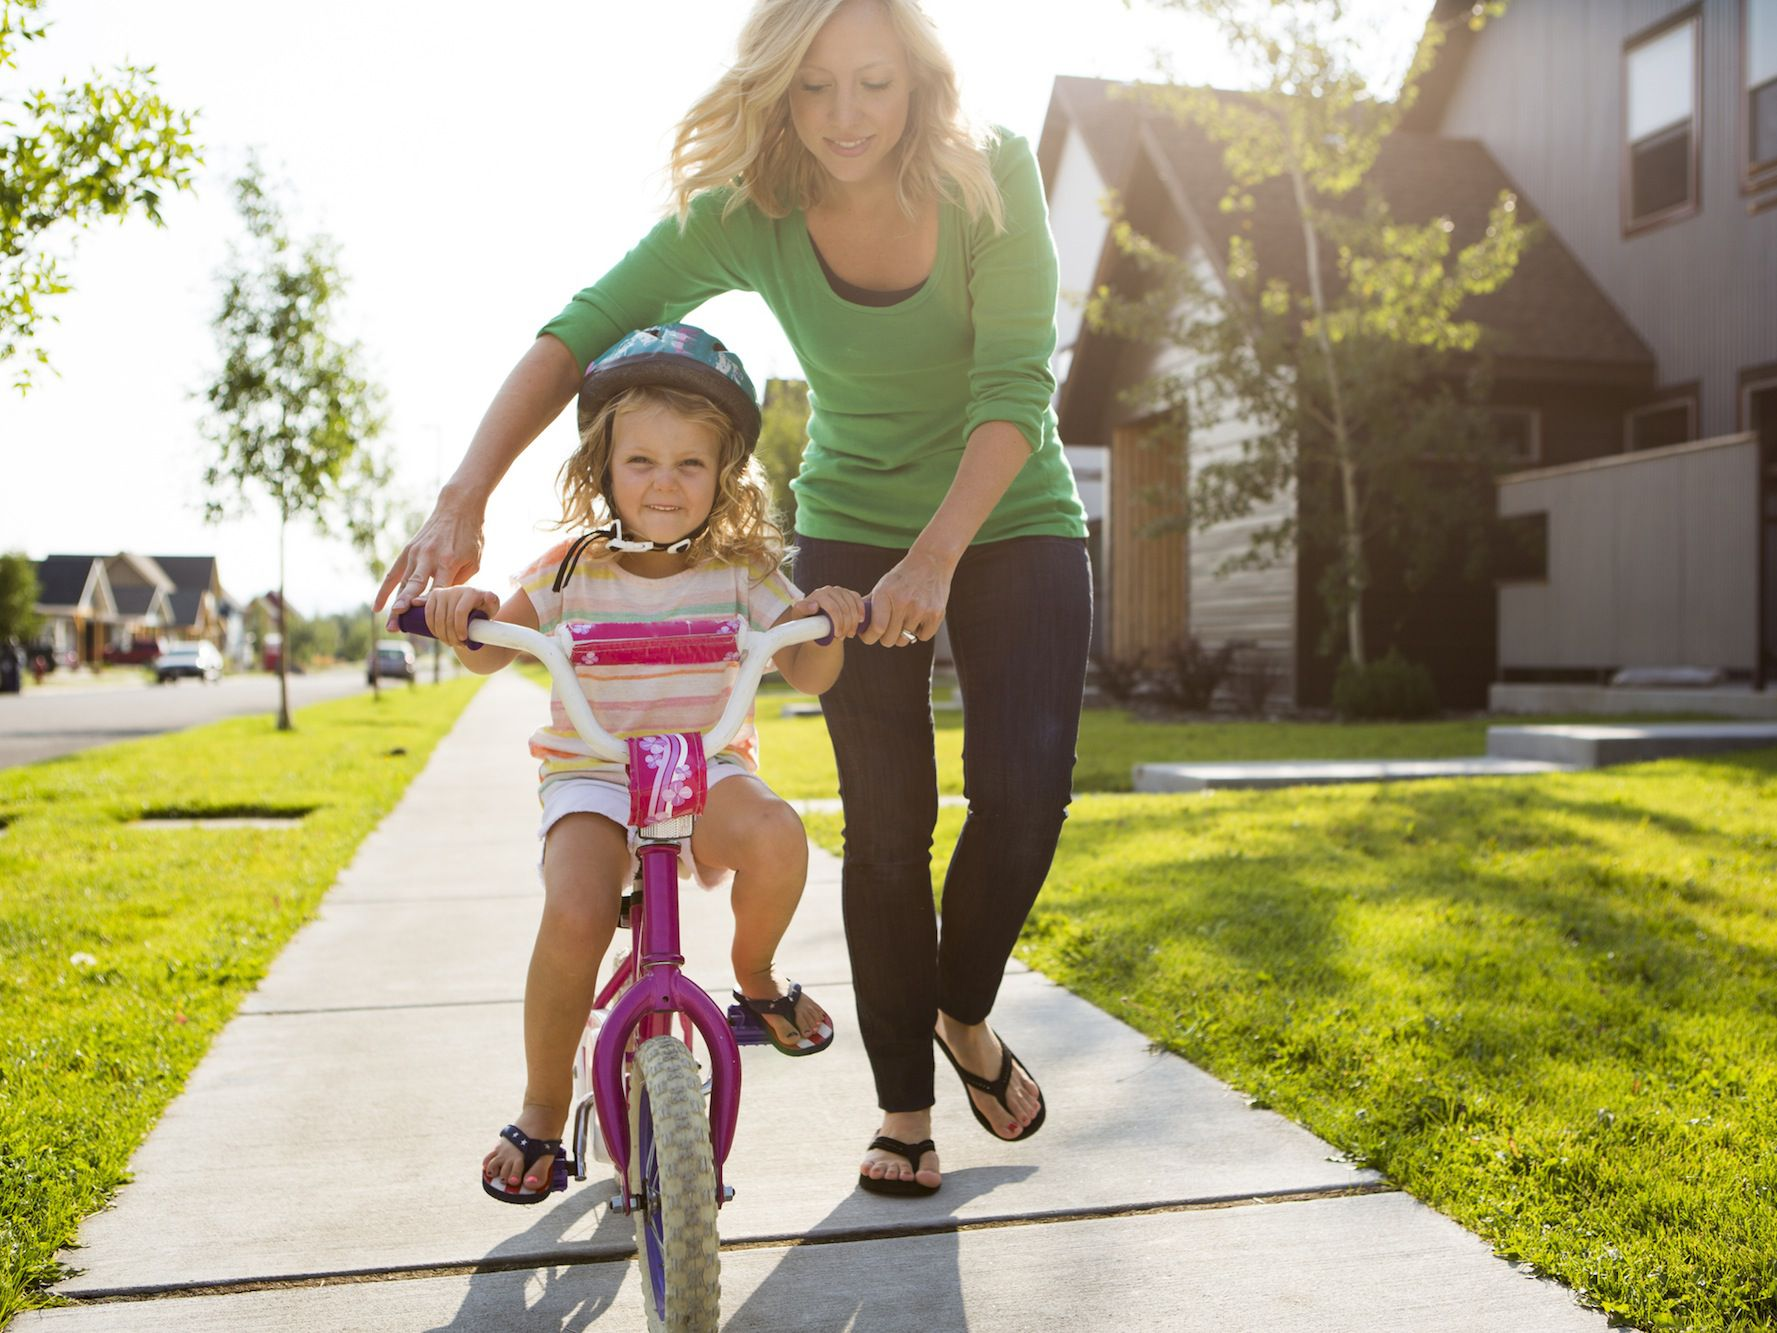 The Best Age for Kids Learning How to Ride a Bike